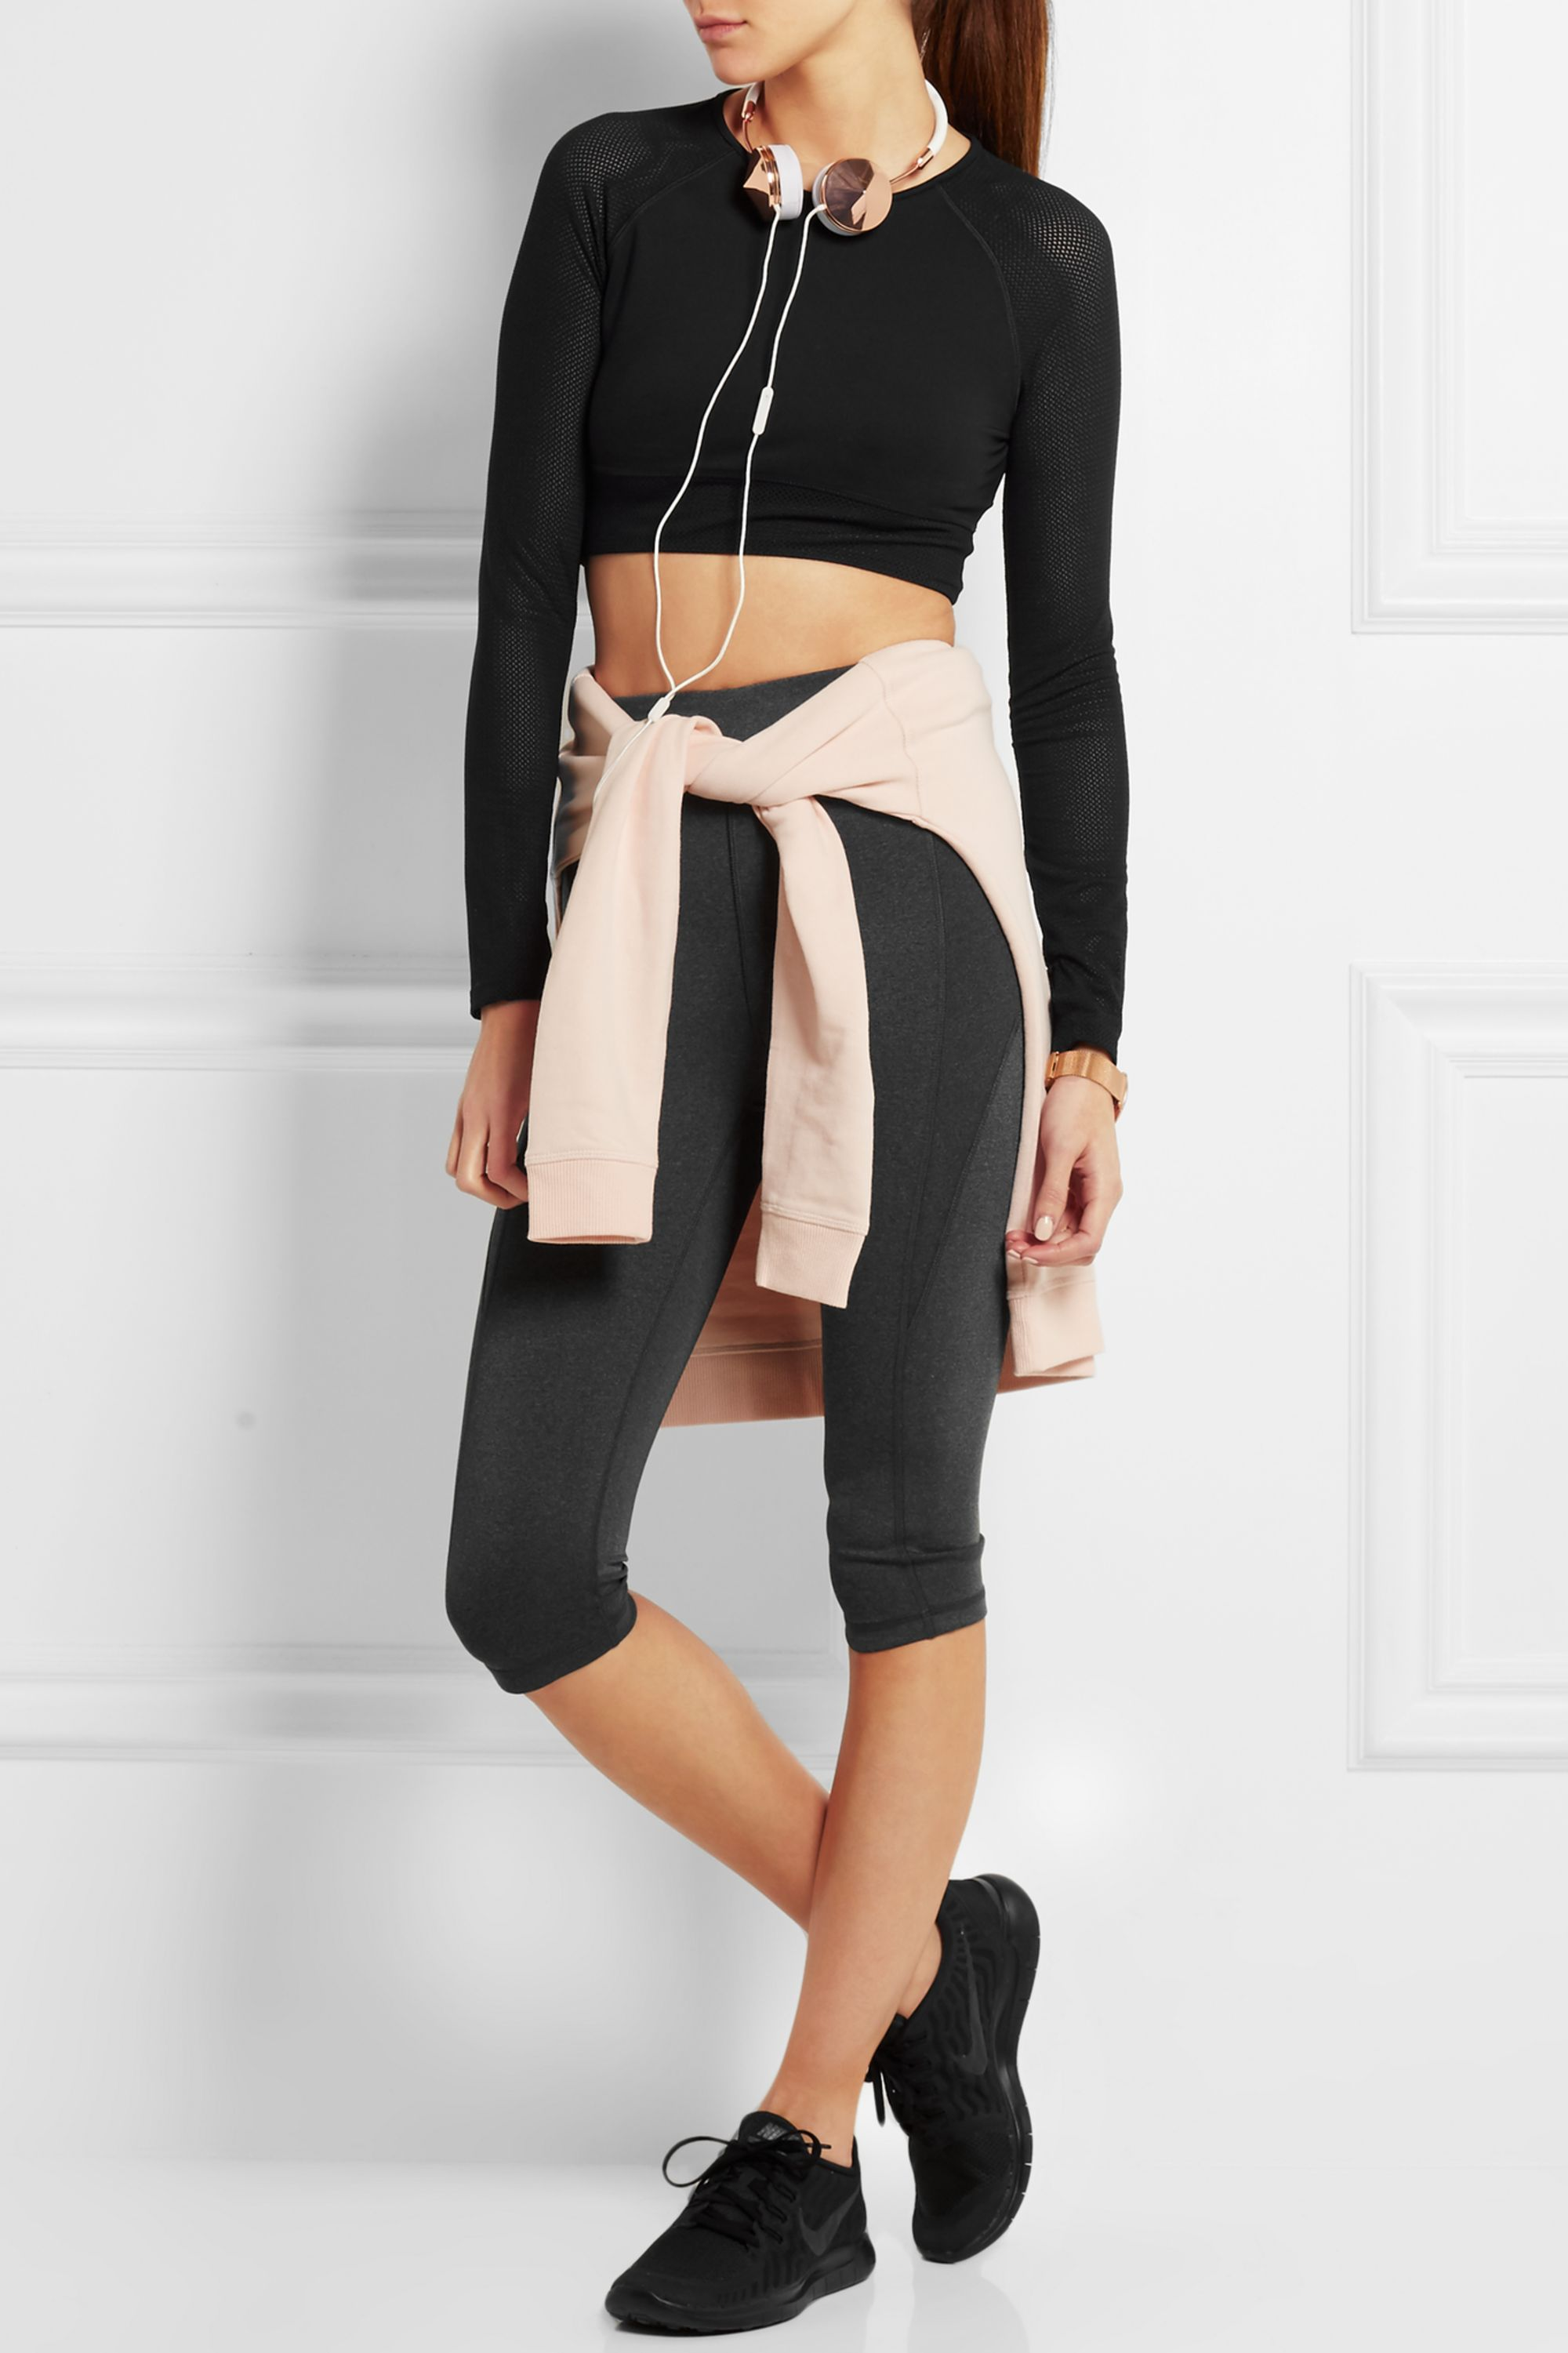 IVY PARK Cropped stretch-jersey and mesh top